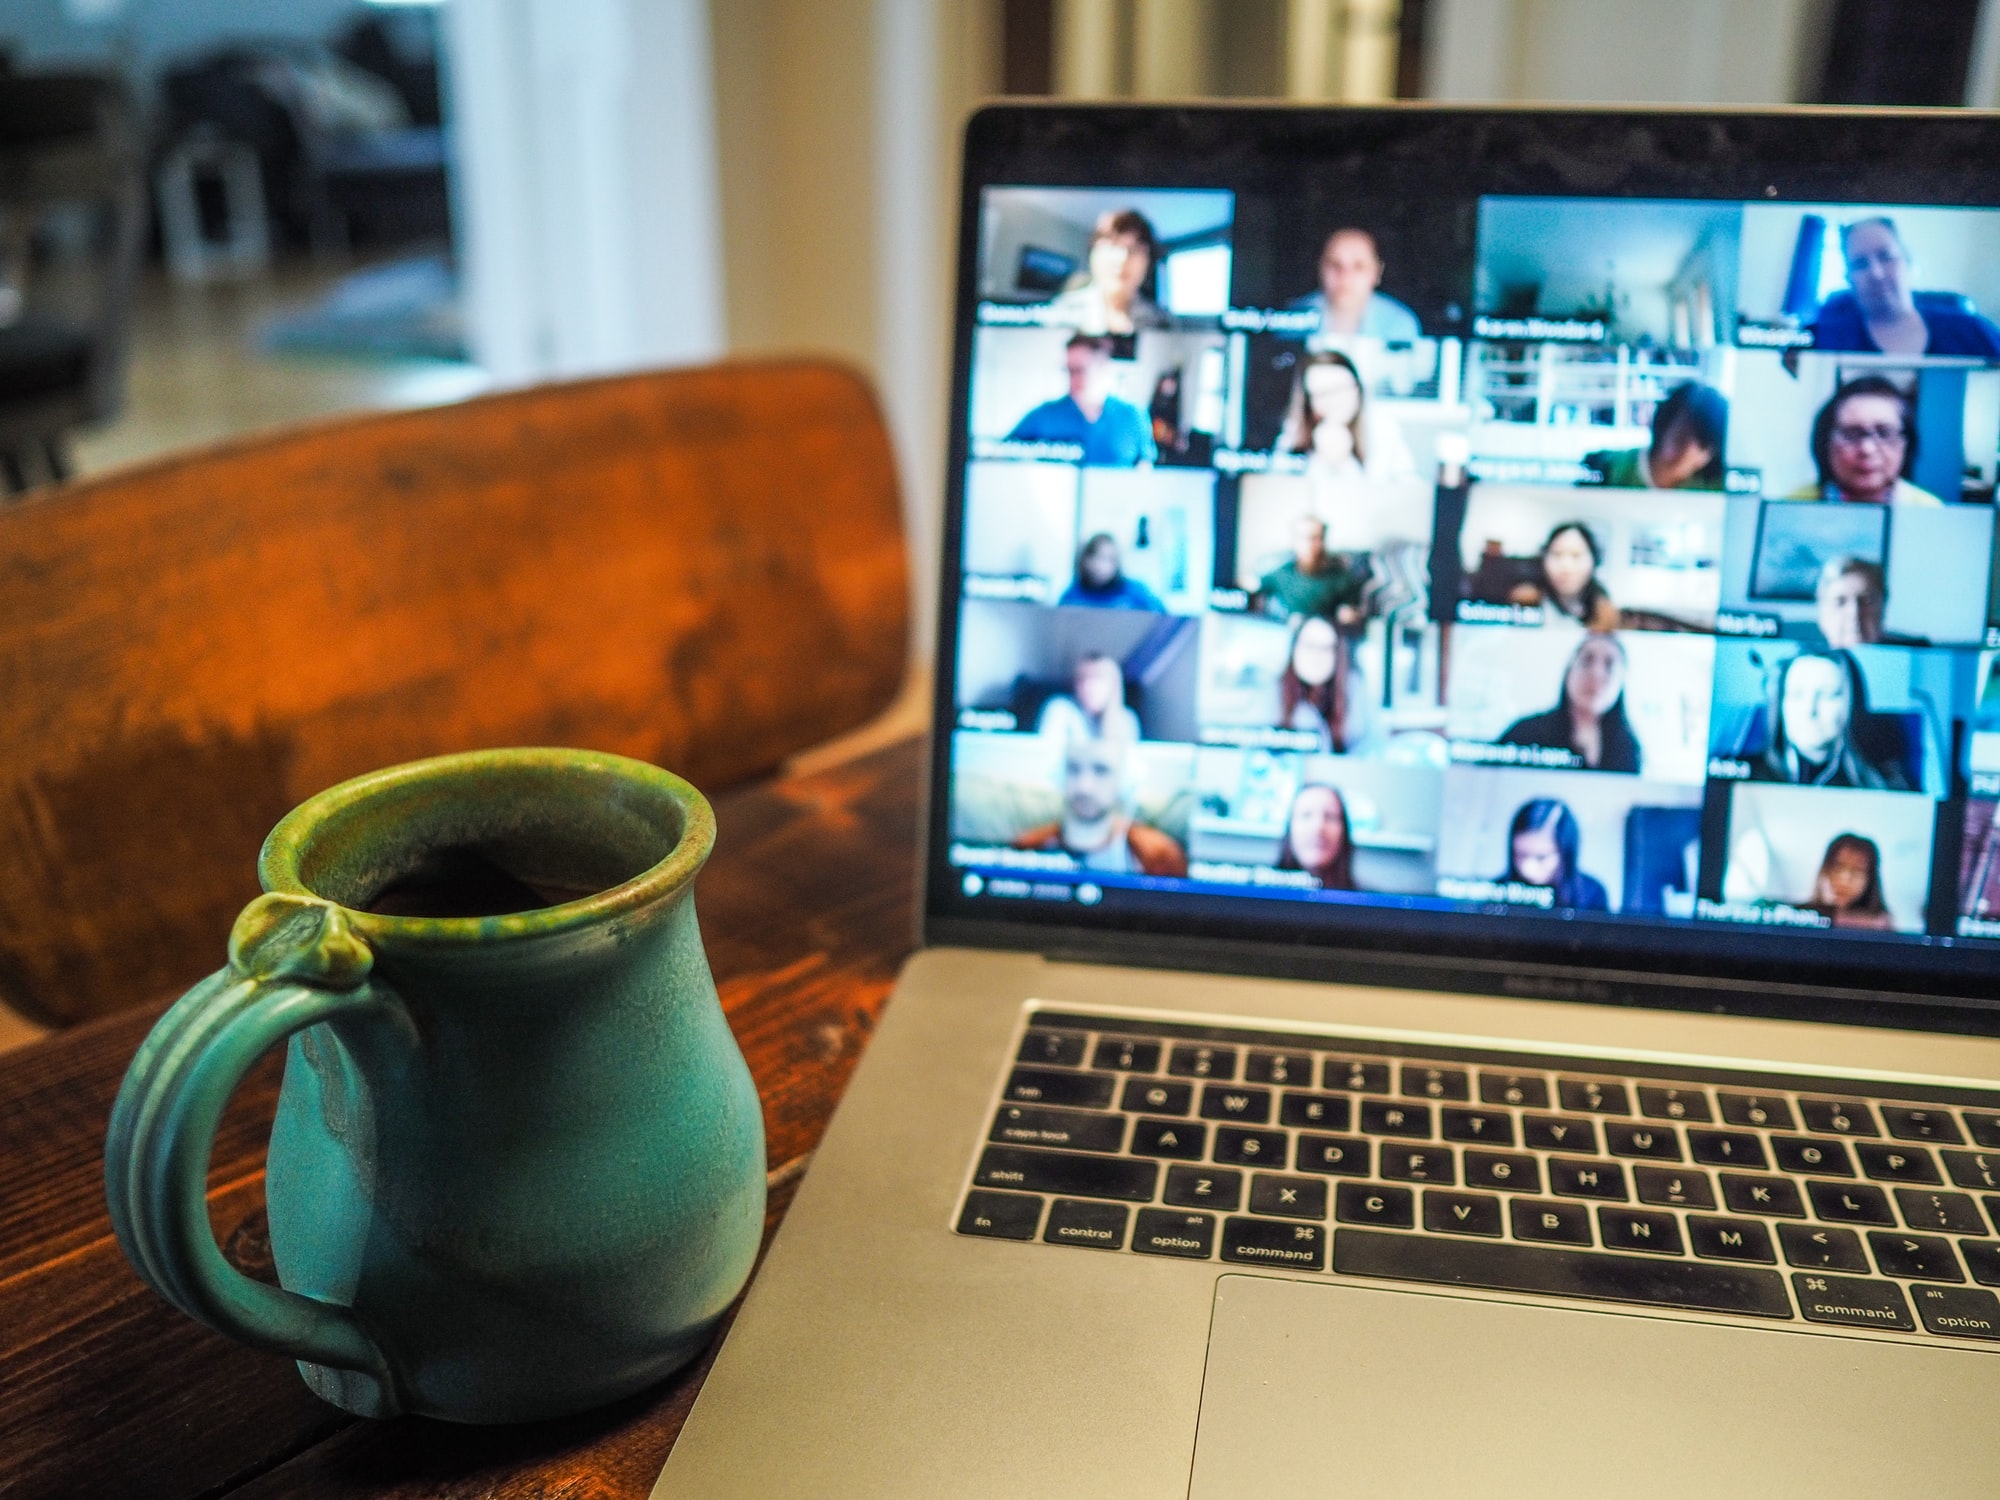 Work From Home is Here to Stay